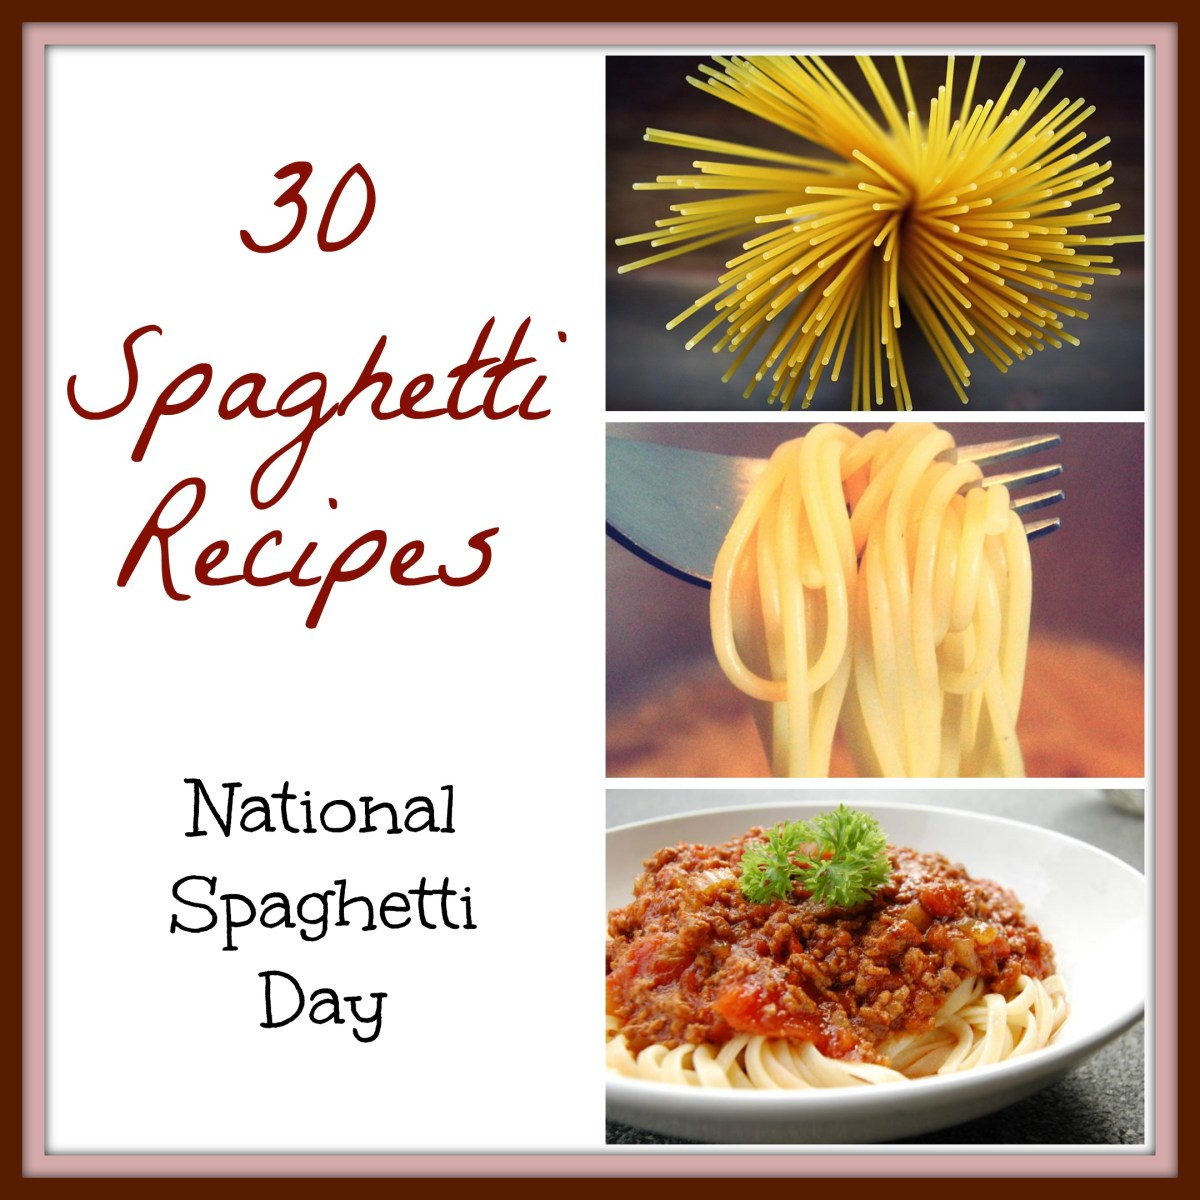 30 Spaghetti Recipes for National Spaghetti Day